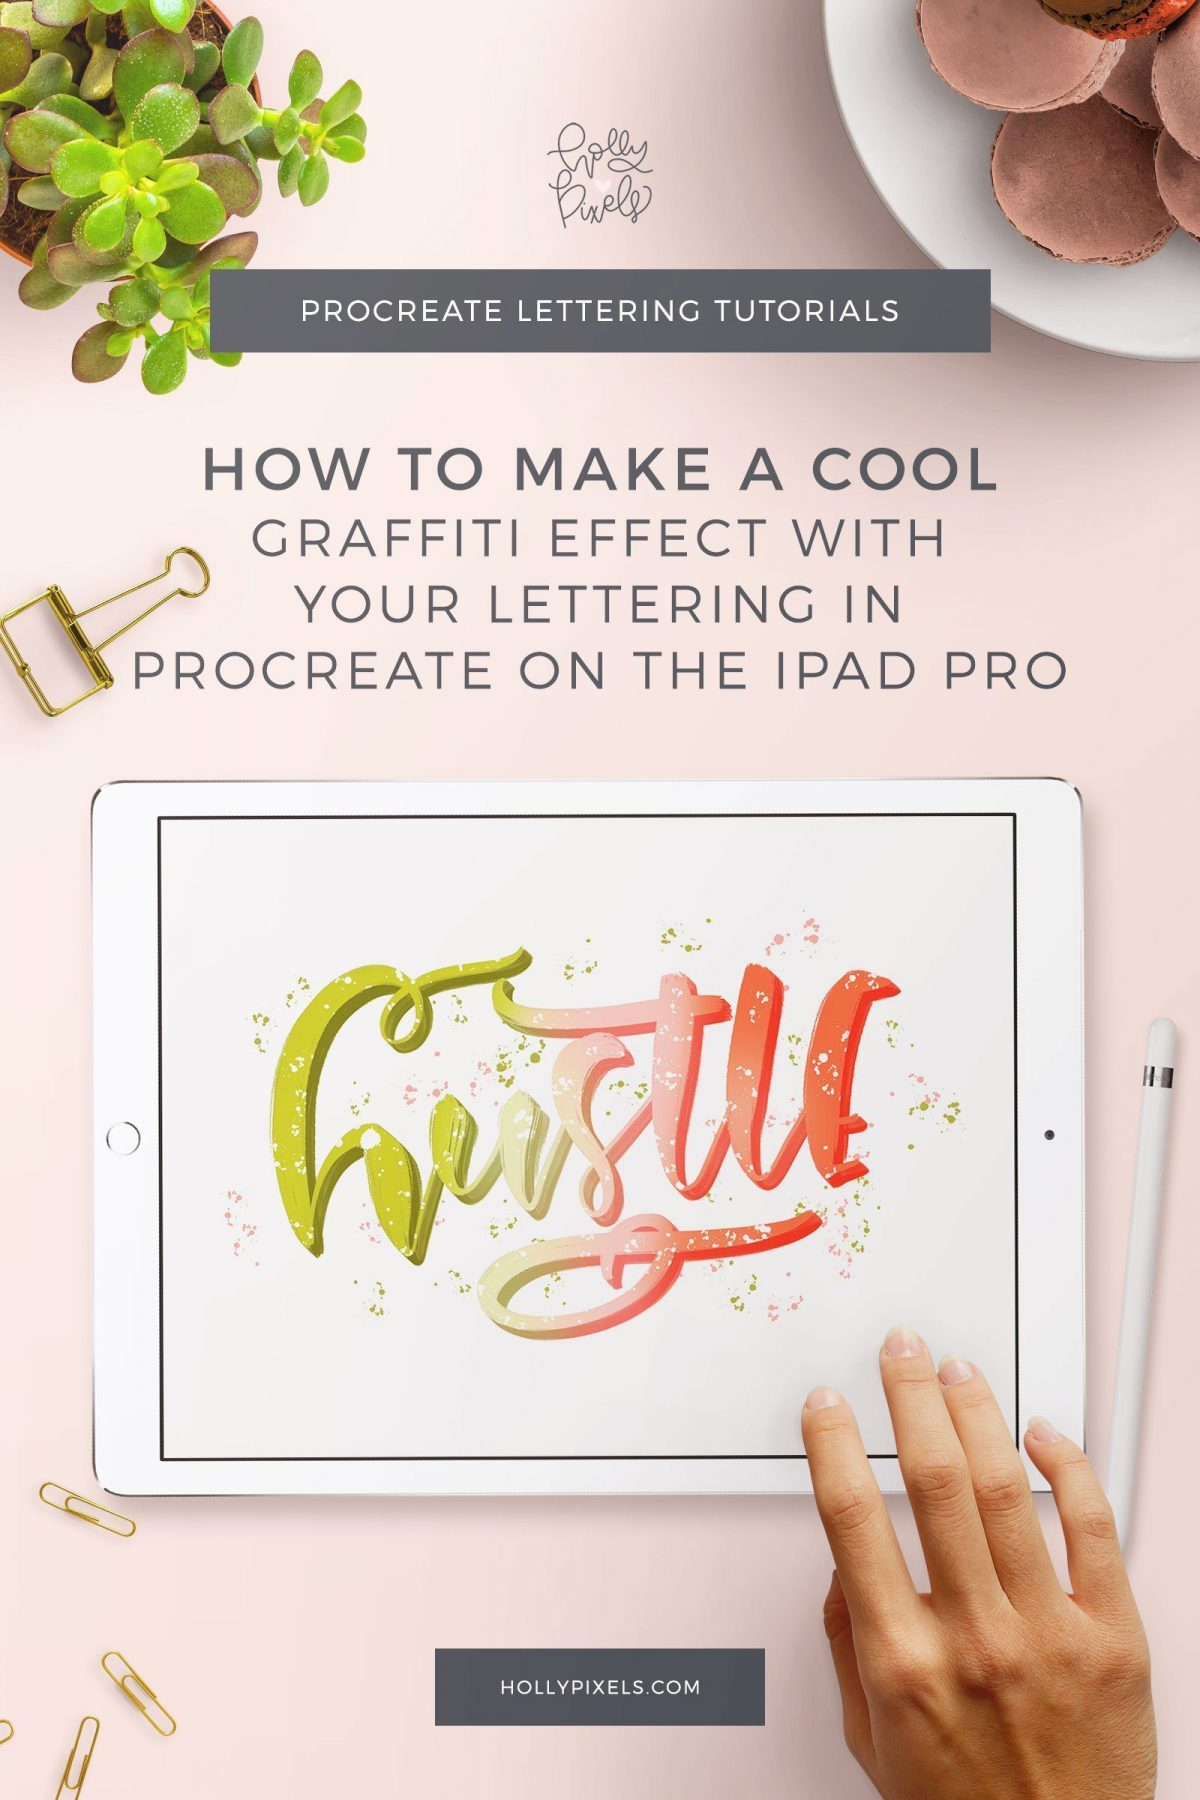 I love this fun graffiti effect in Procreate. It's easy to recreate and can take your lettering to a new level other than the boring flat styles. Create a gradient spray painted look and a fun 3d shadow with splatters of paint for your iPad Lettering this week.